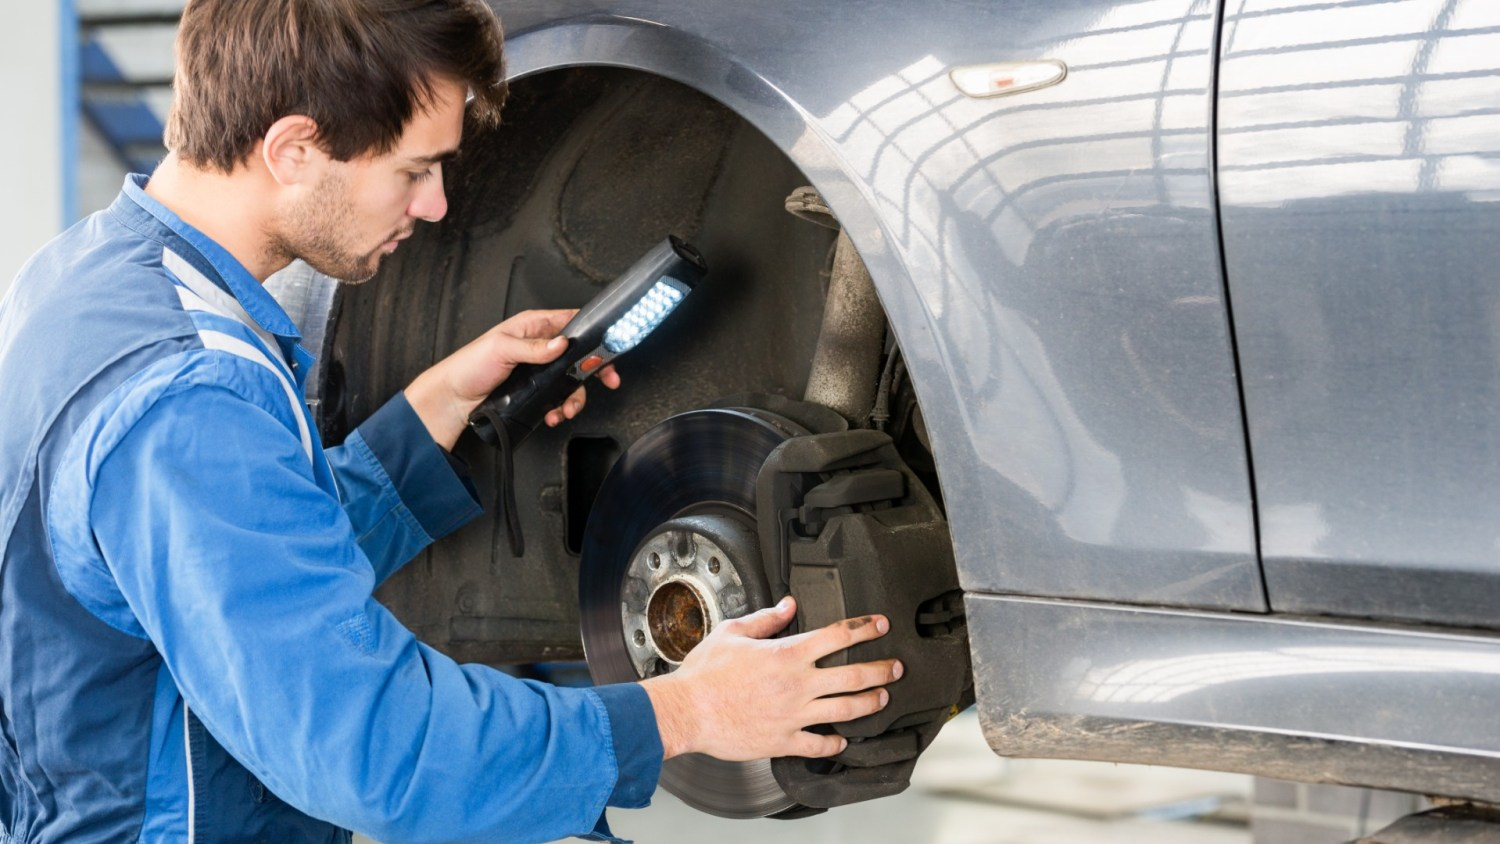 Halfords offering free brakes for life